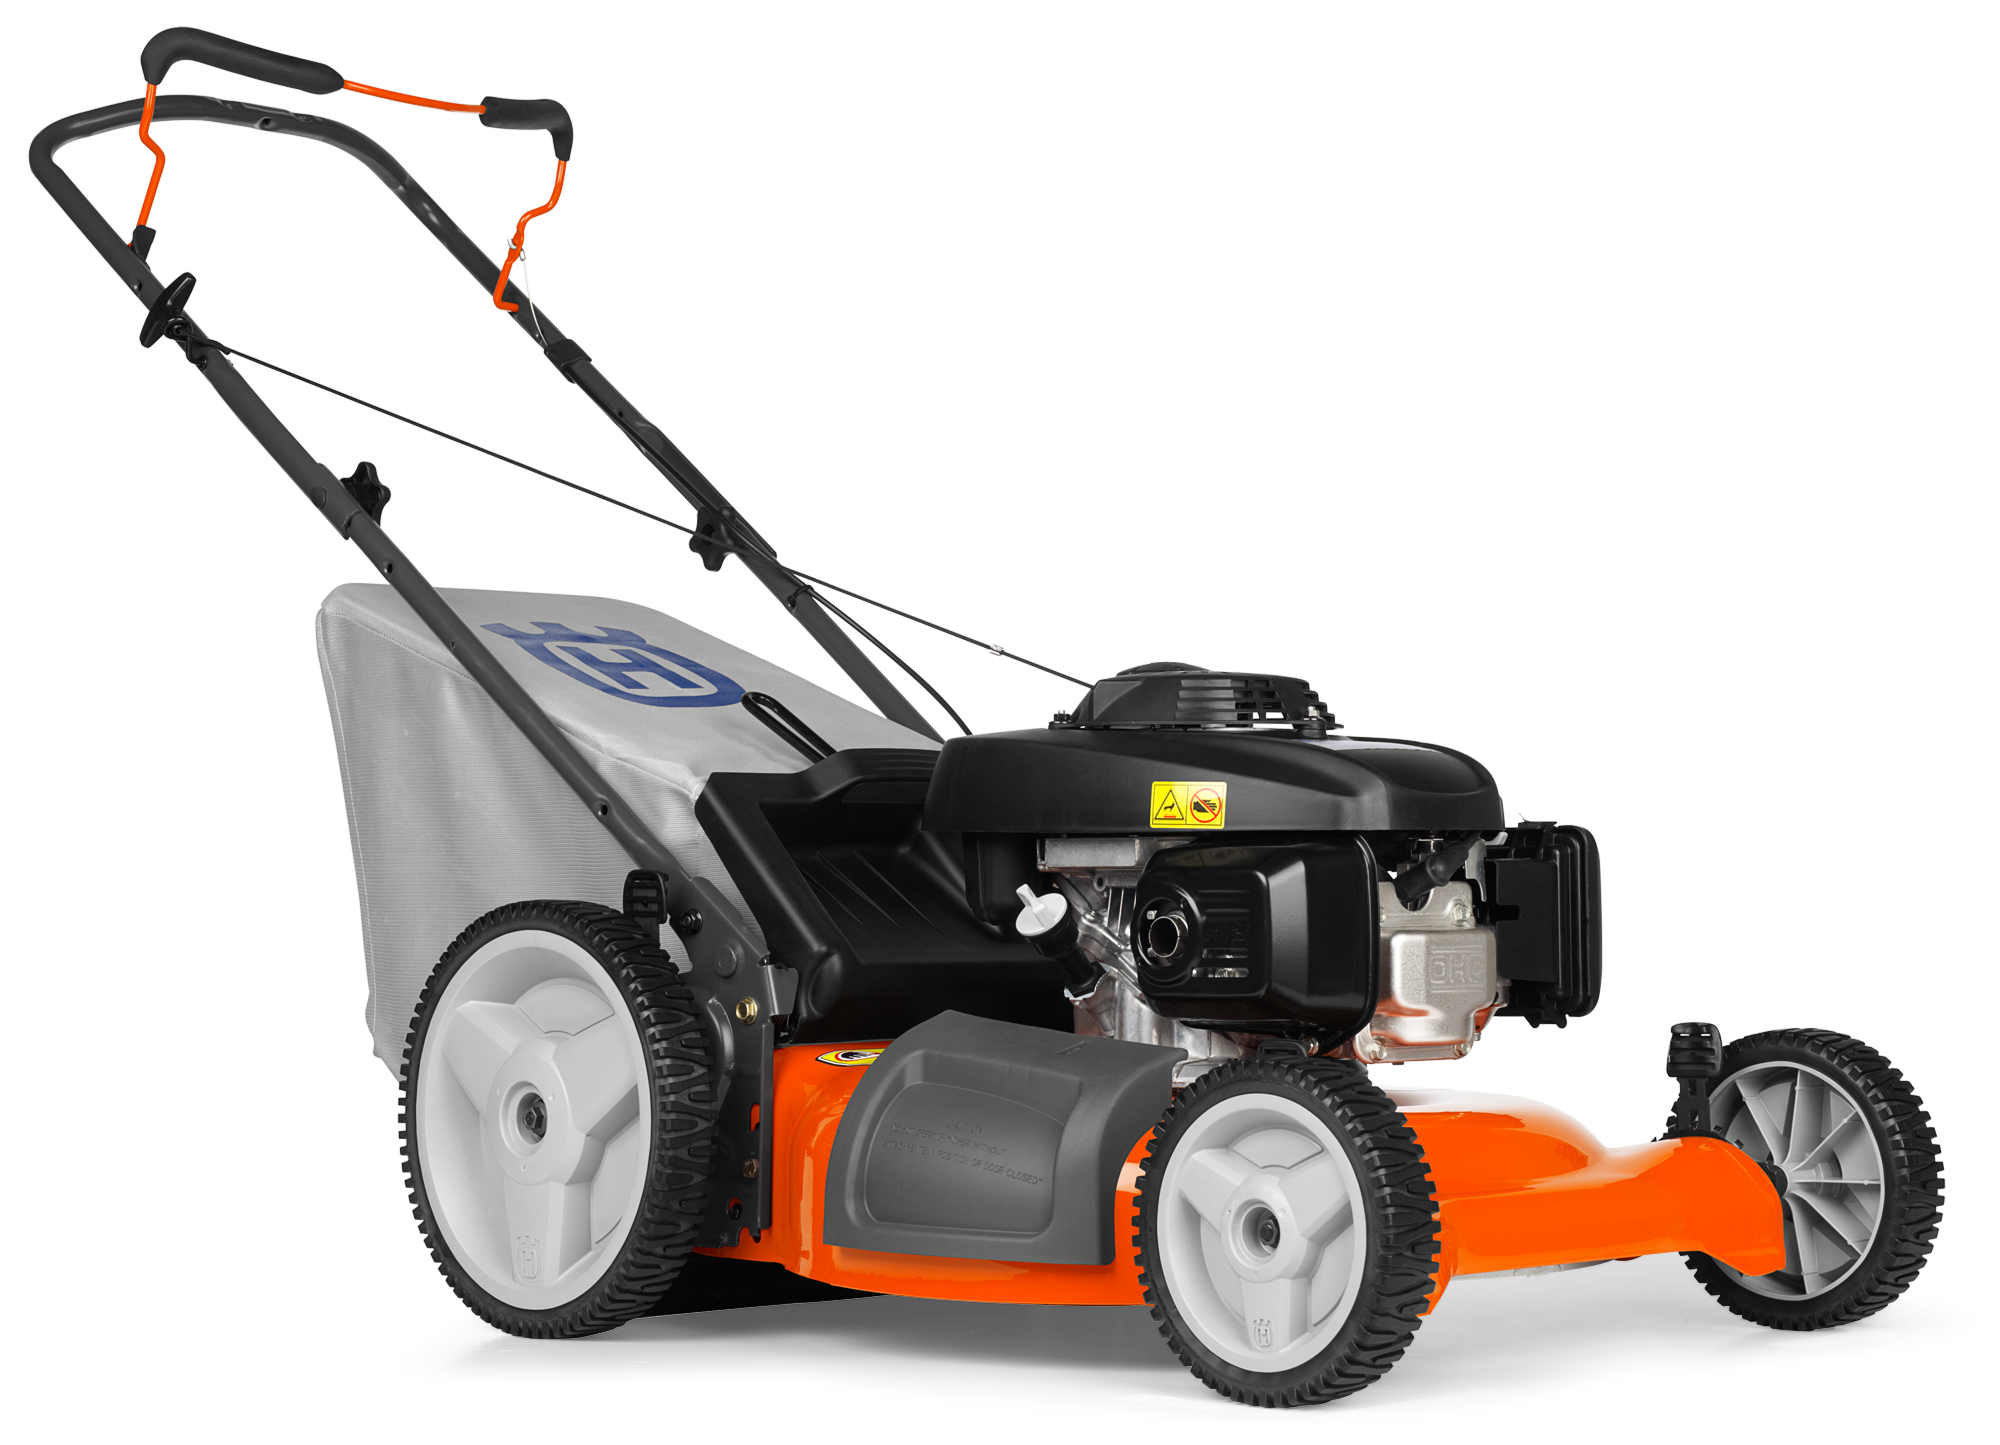 Image for 7021P Gas Push Lawn Mower                                                                                                        from HusqvarnaB2C